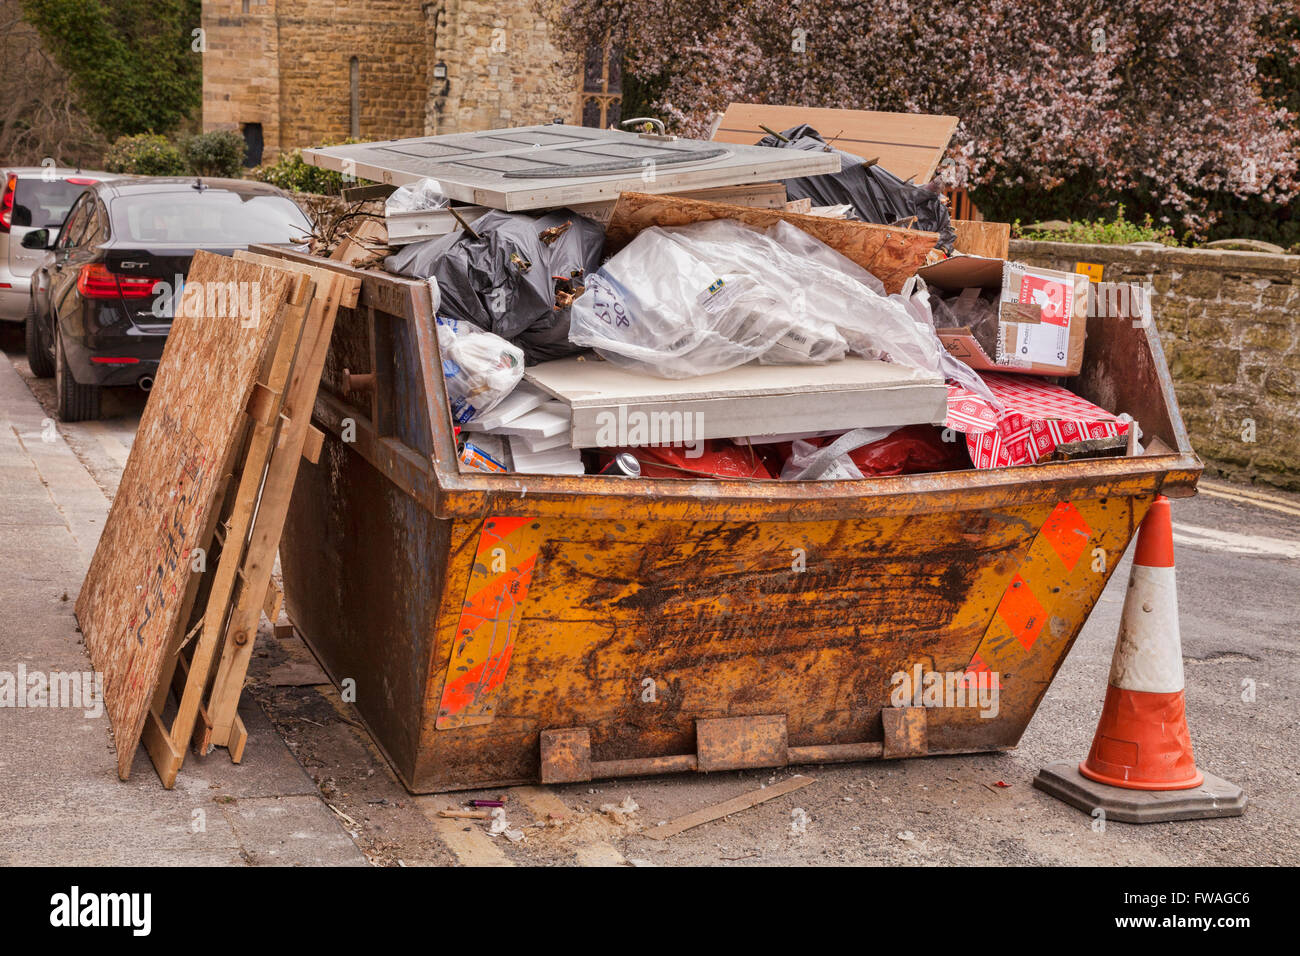 Builder's skip on the roadside, filled with rubble. - Stock Image